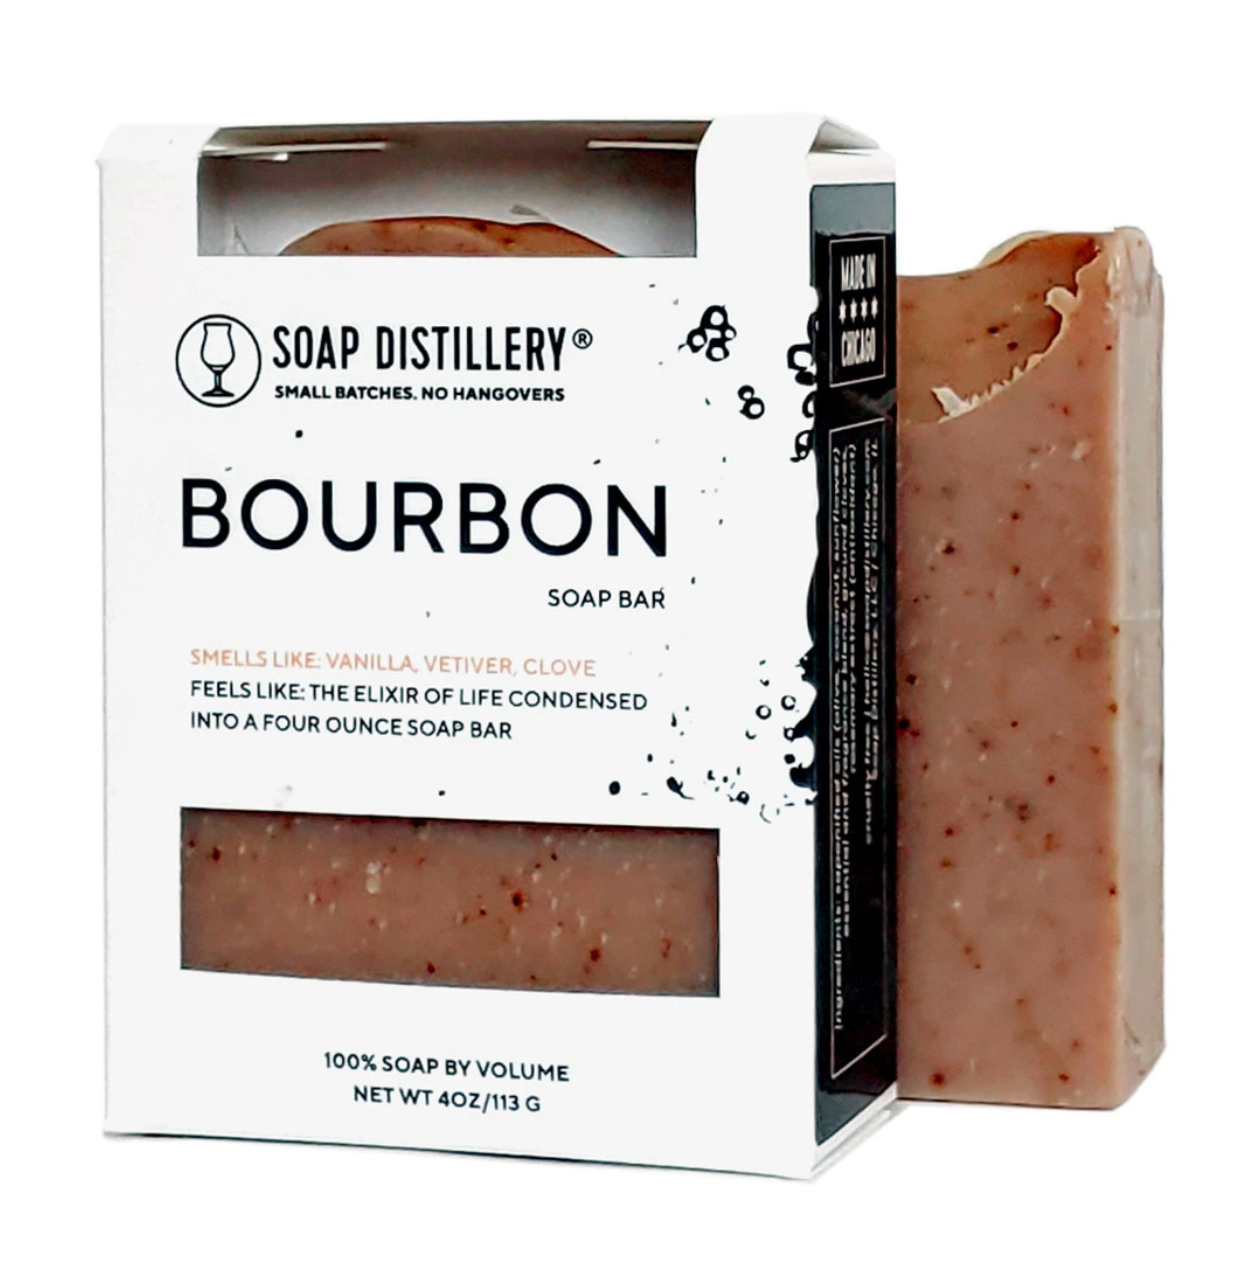 Soap Distillery Bourbon Soap Bar